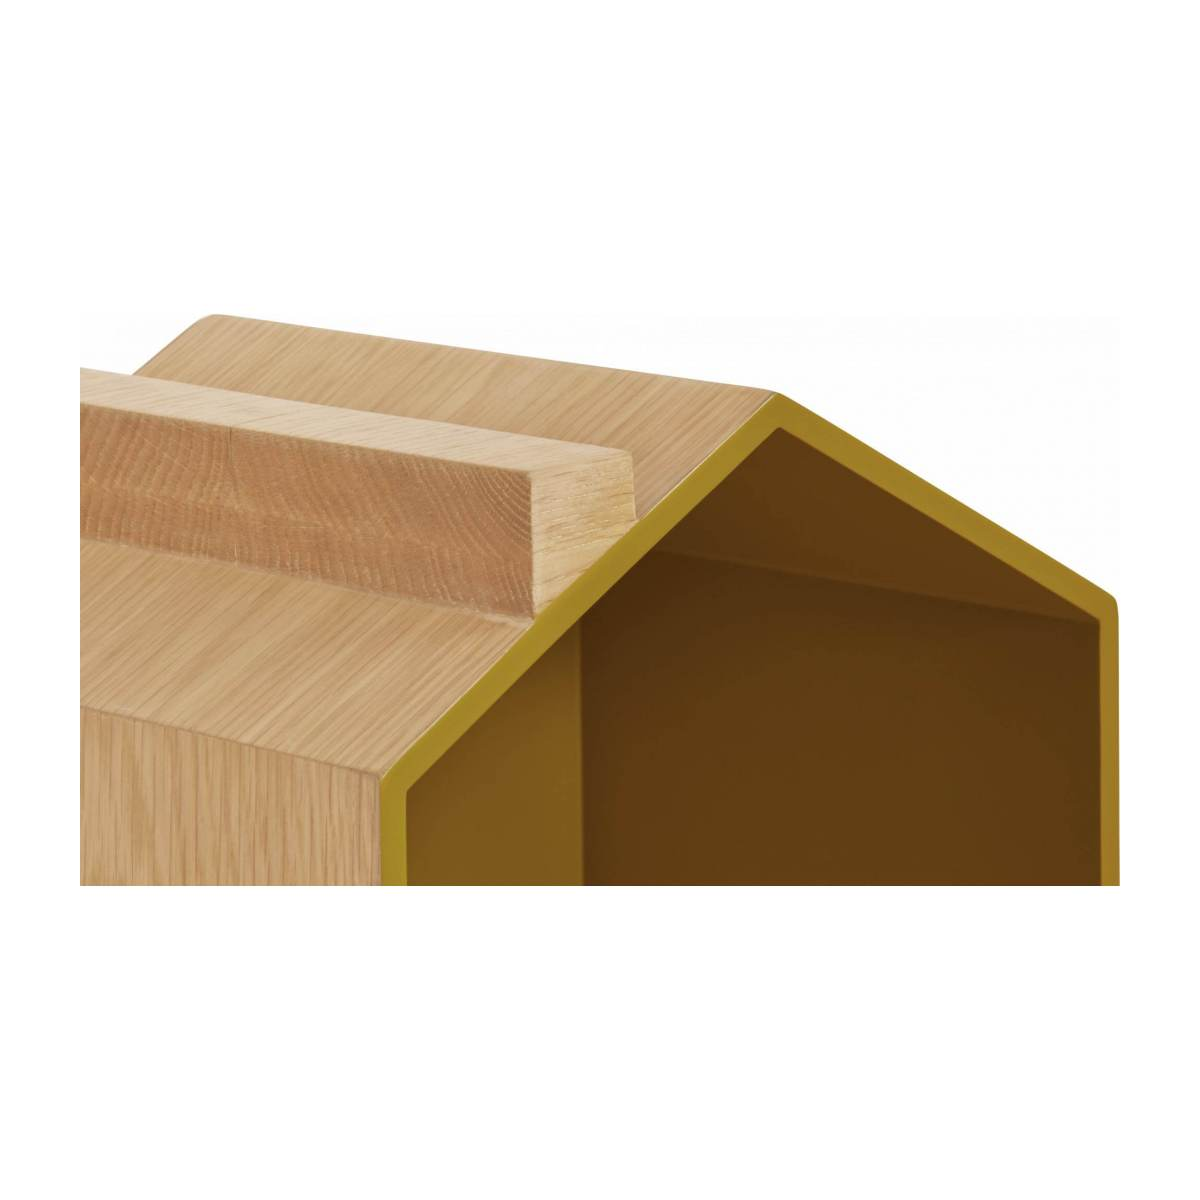 Set of 2 shelves made of oak, natural, grey-blue and yellow n°9